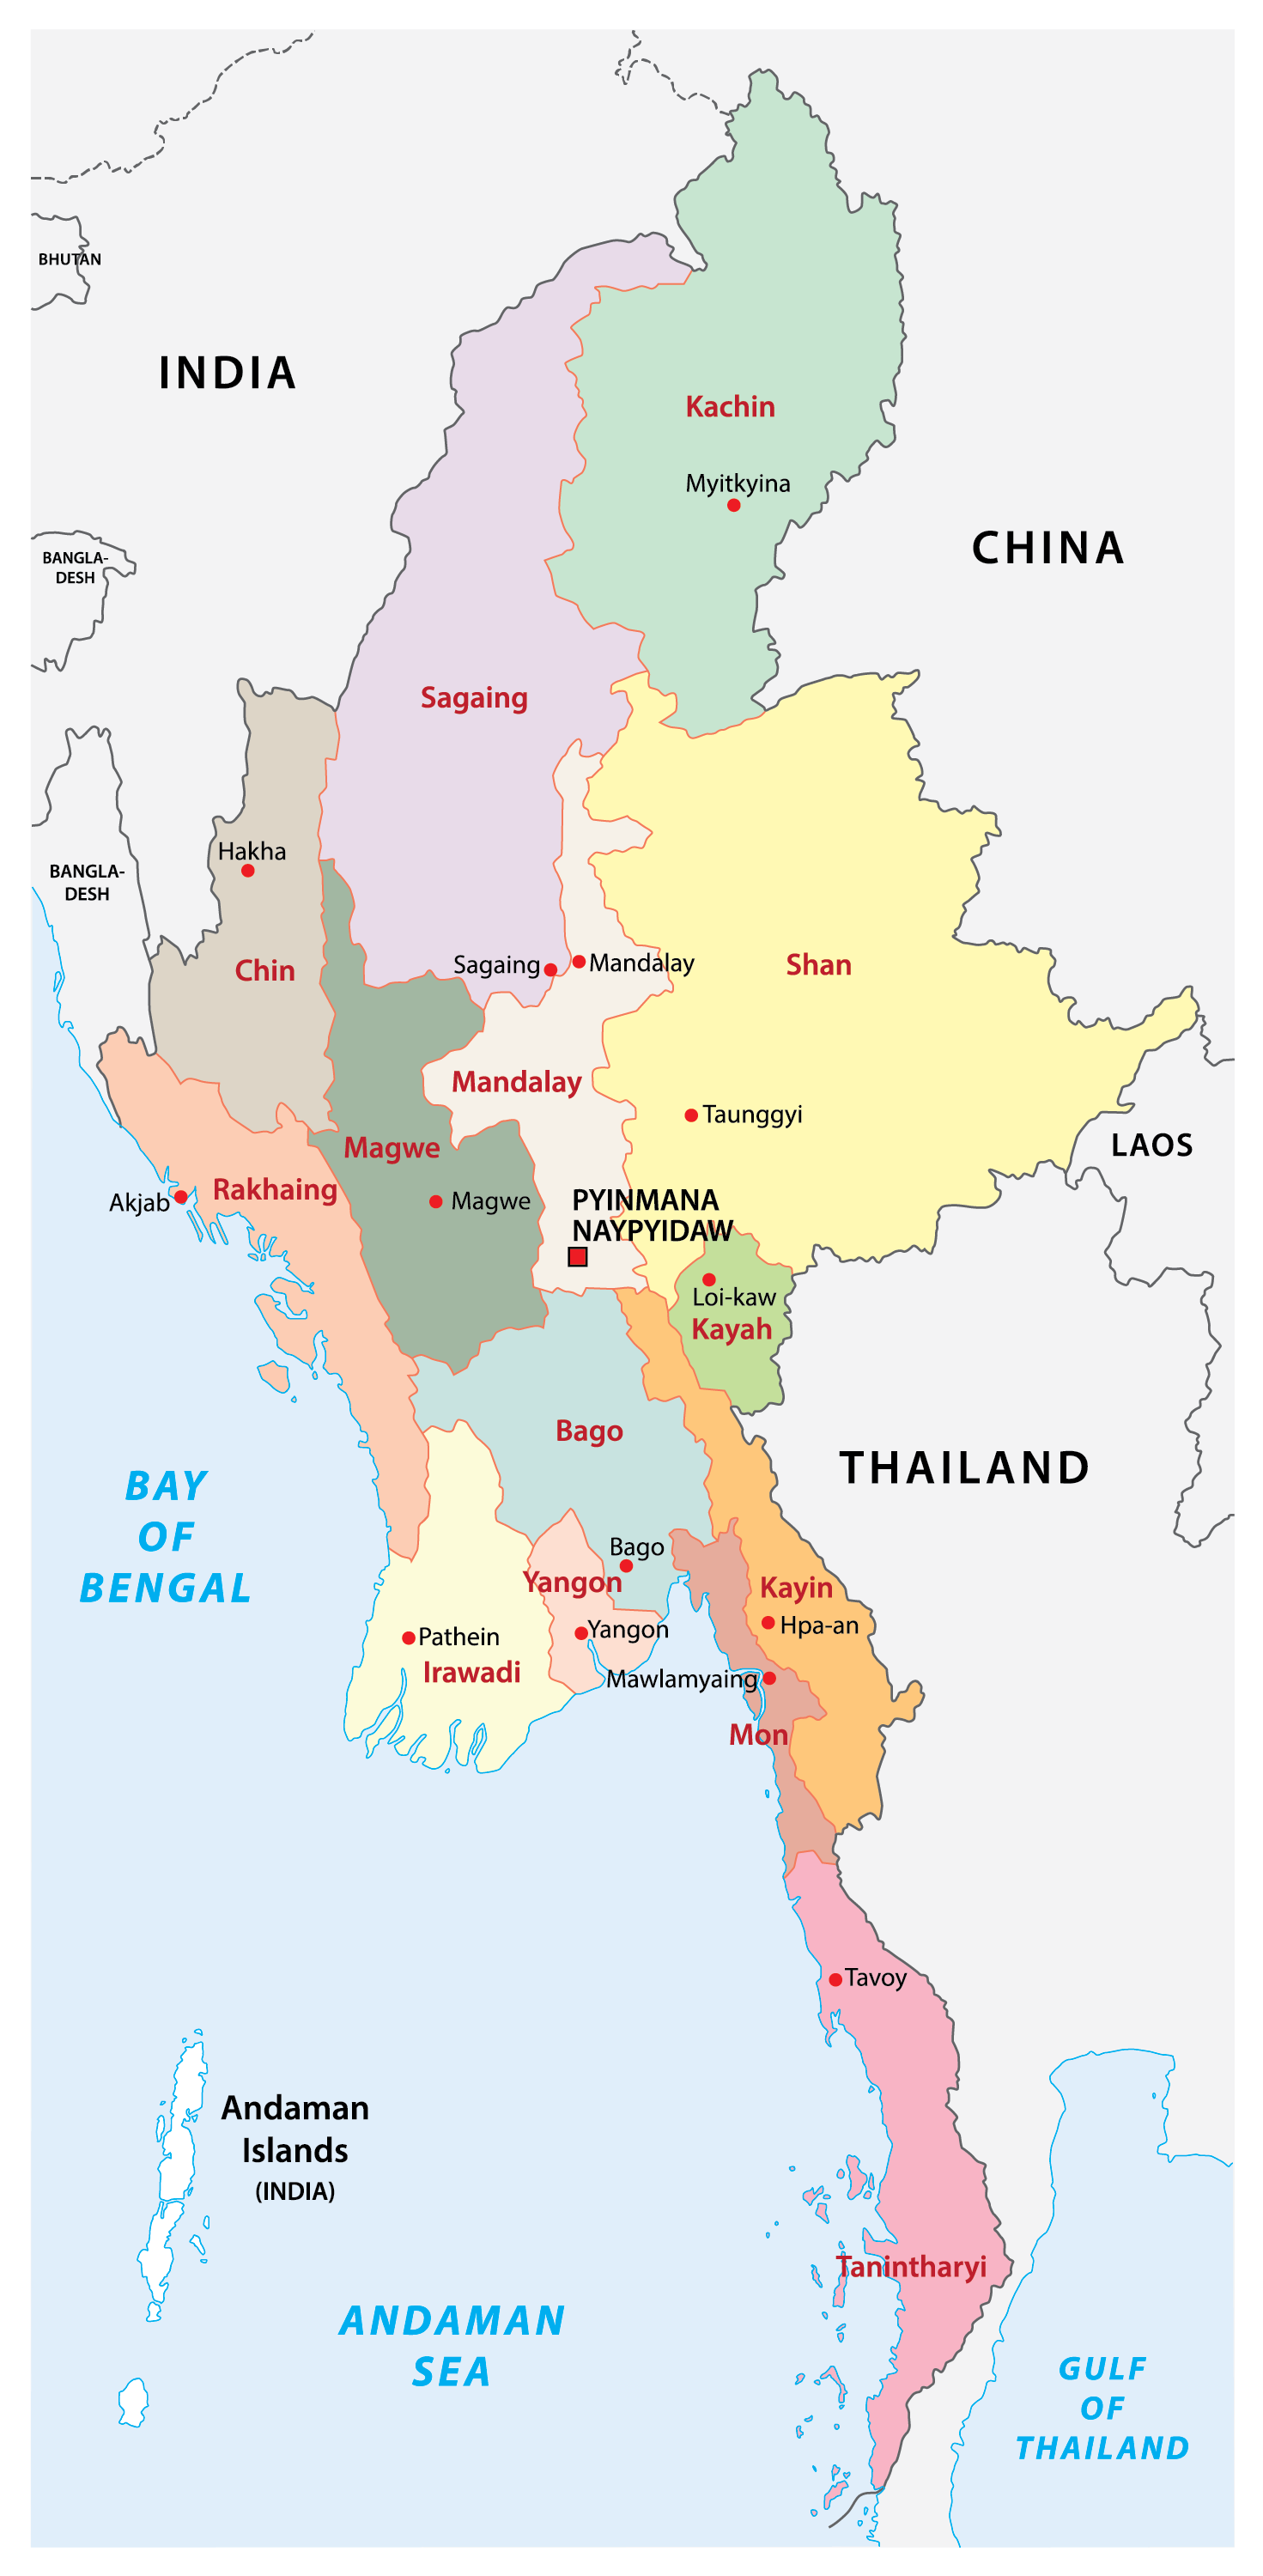 Political Map of Myanmar/Burma into 7 regions, their capitals, and the national capital of Naypyidaw.